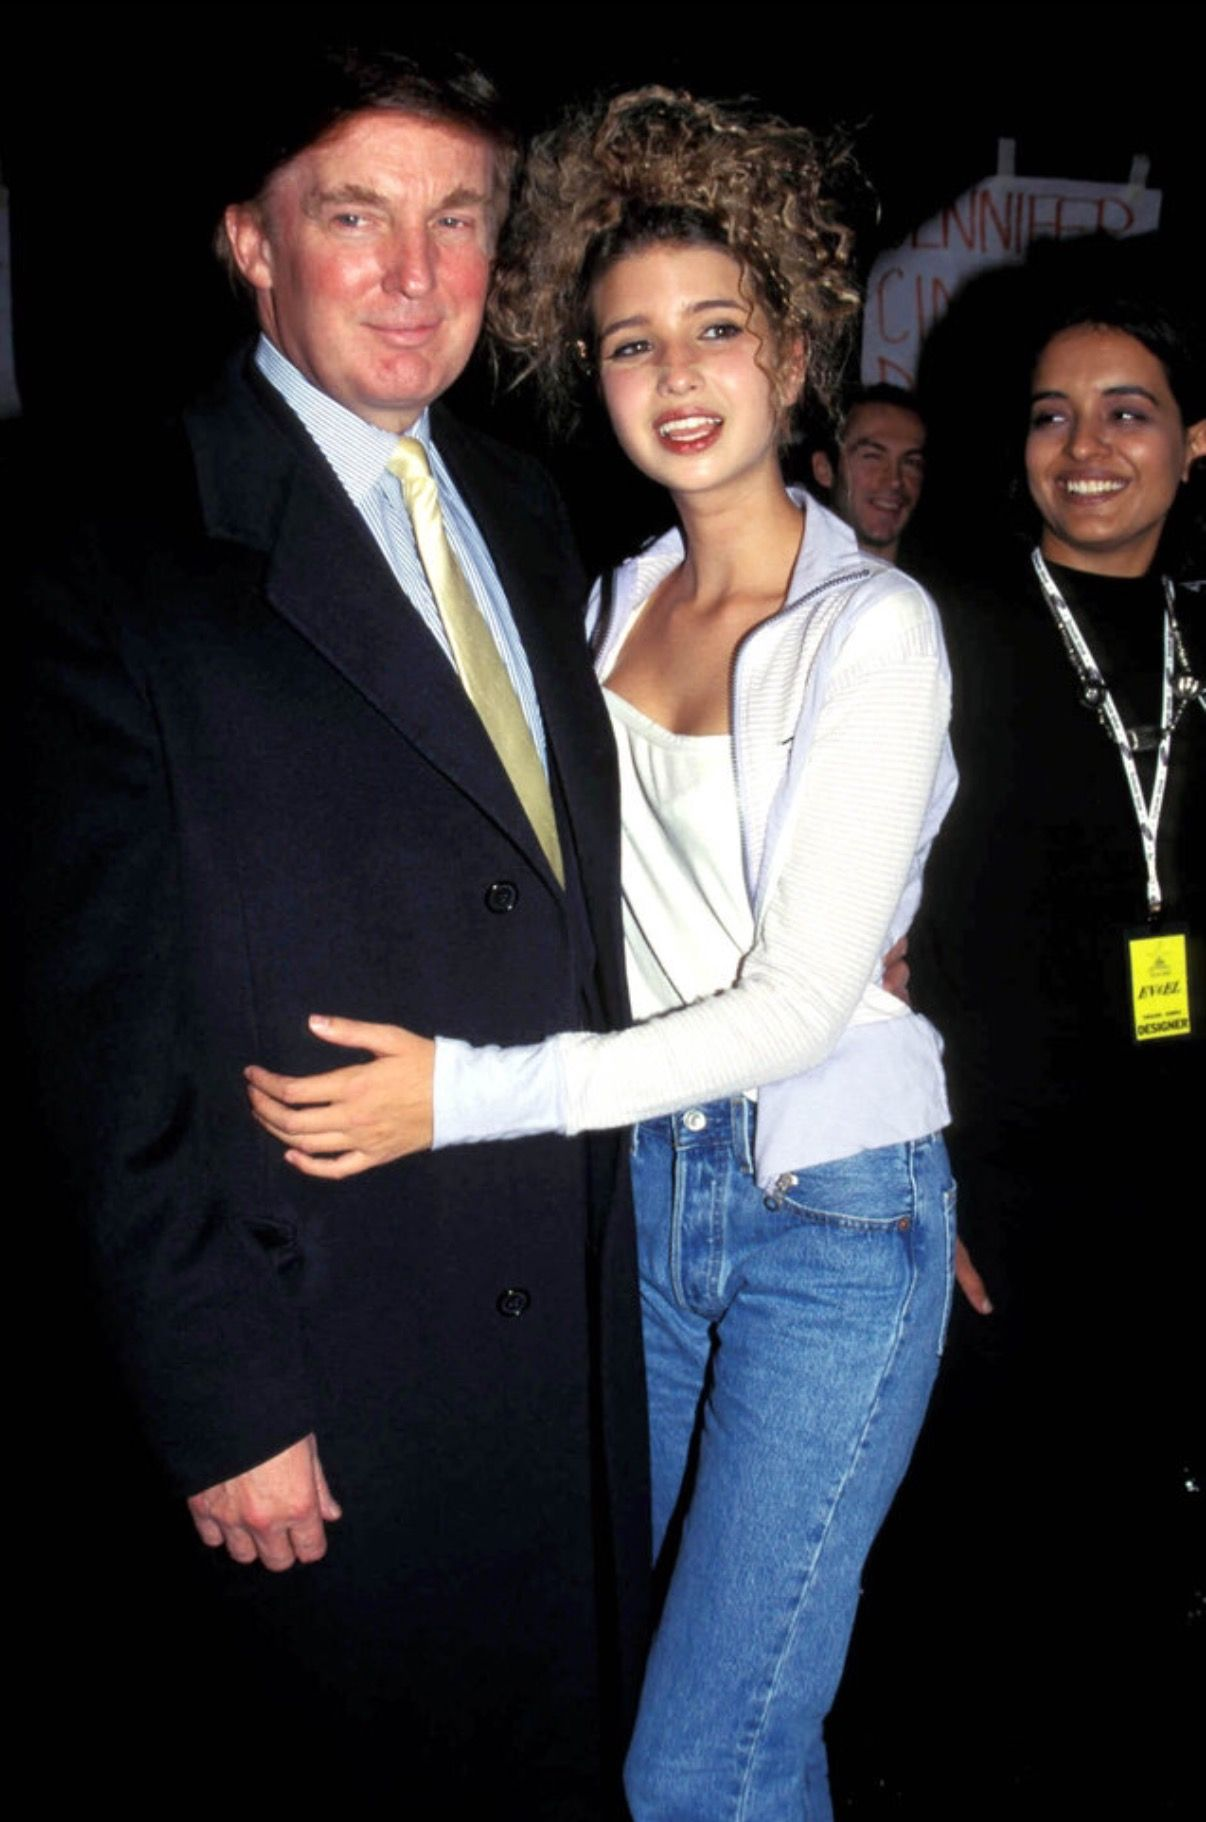 Adolescent Ivanka With Her Father Undated Photo Ivanka Trump Photos Trump Fashion Ivana Trump